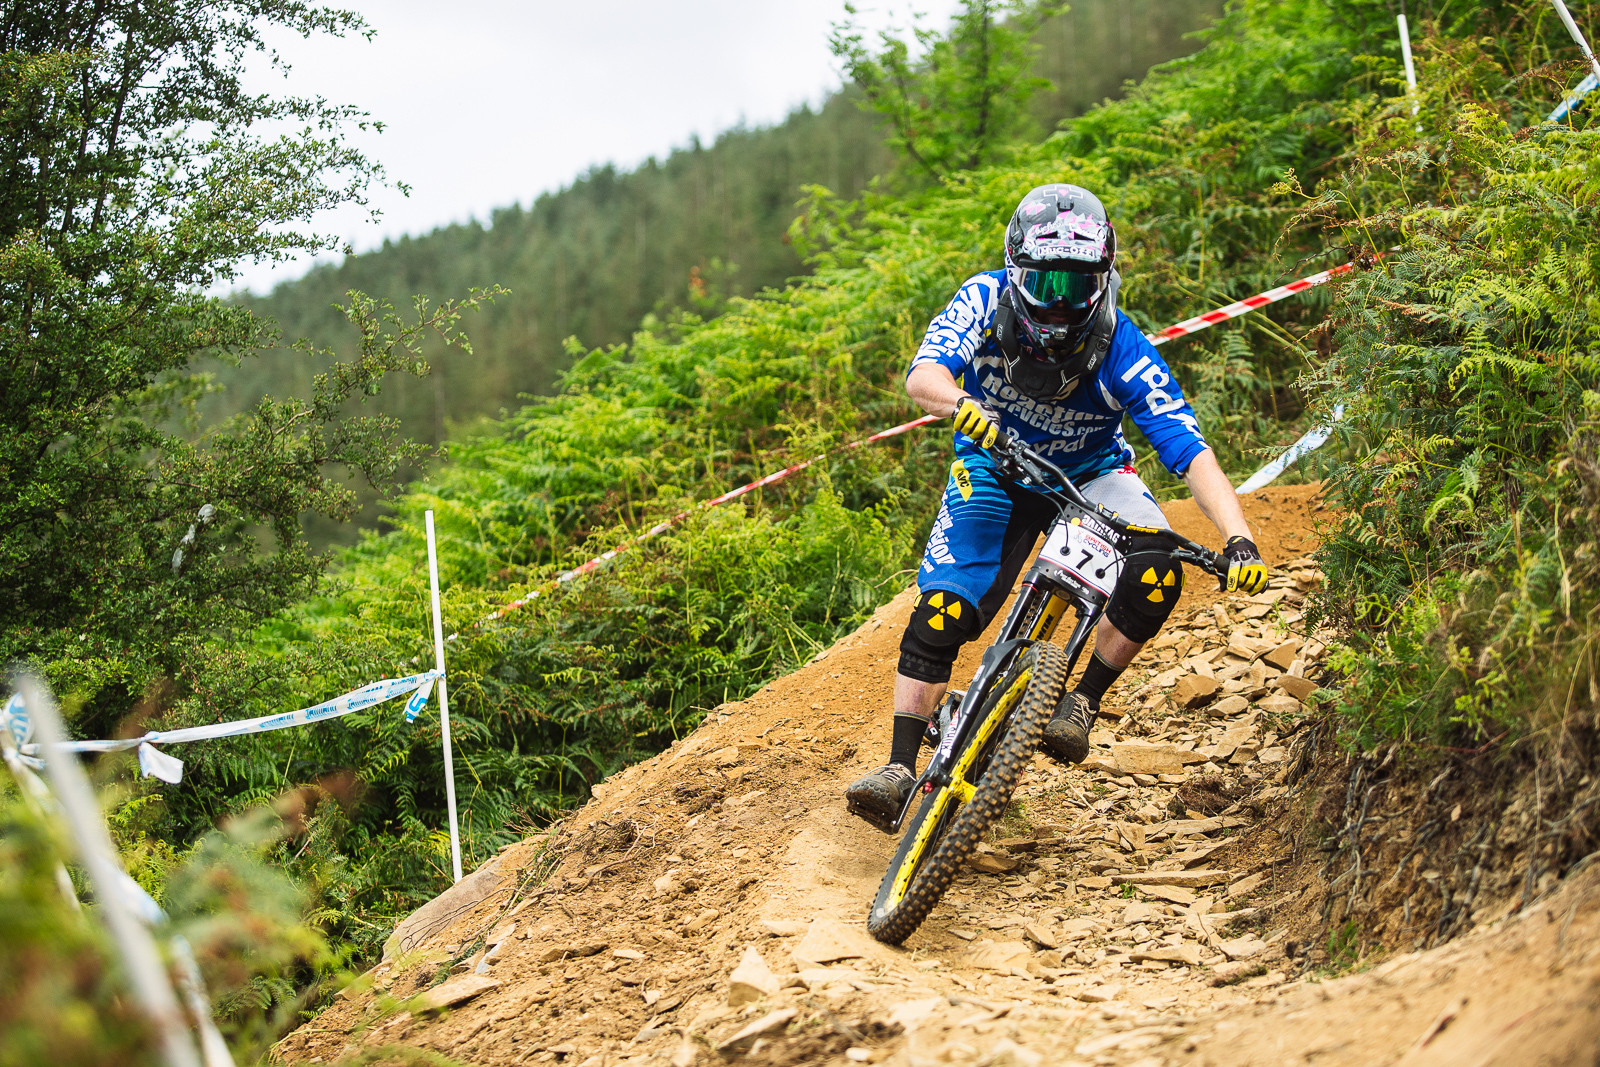 Joe Smith - 2015 British National Champs Downhill - 2015 British National Champs Downhill Photos - Mountain Biking Pictures - Vital MTB